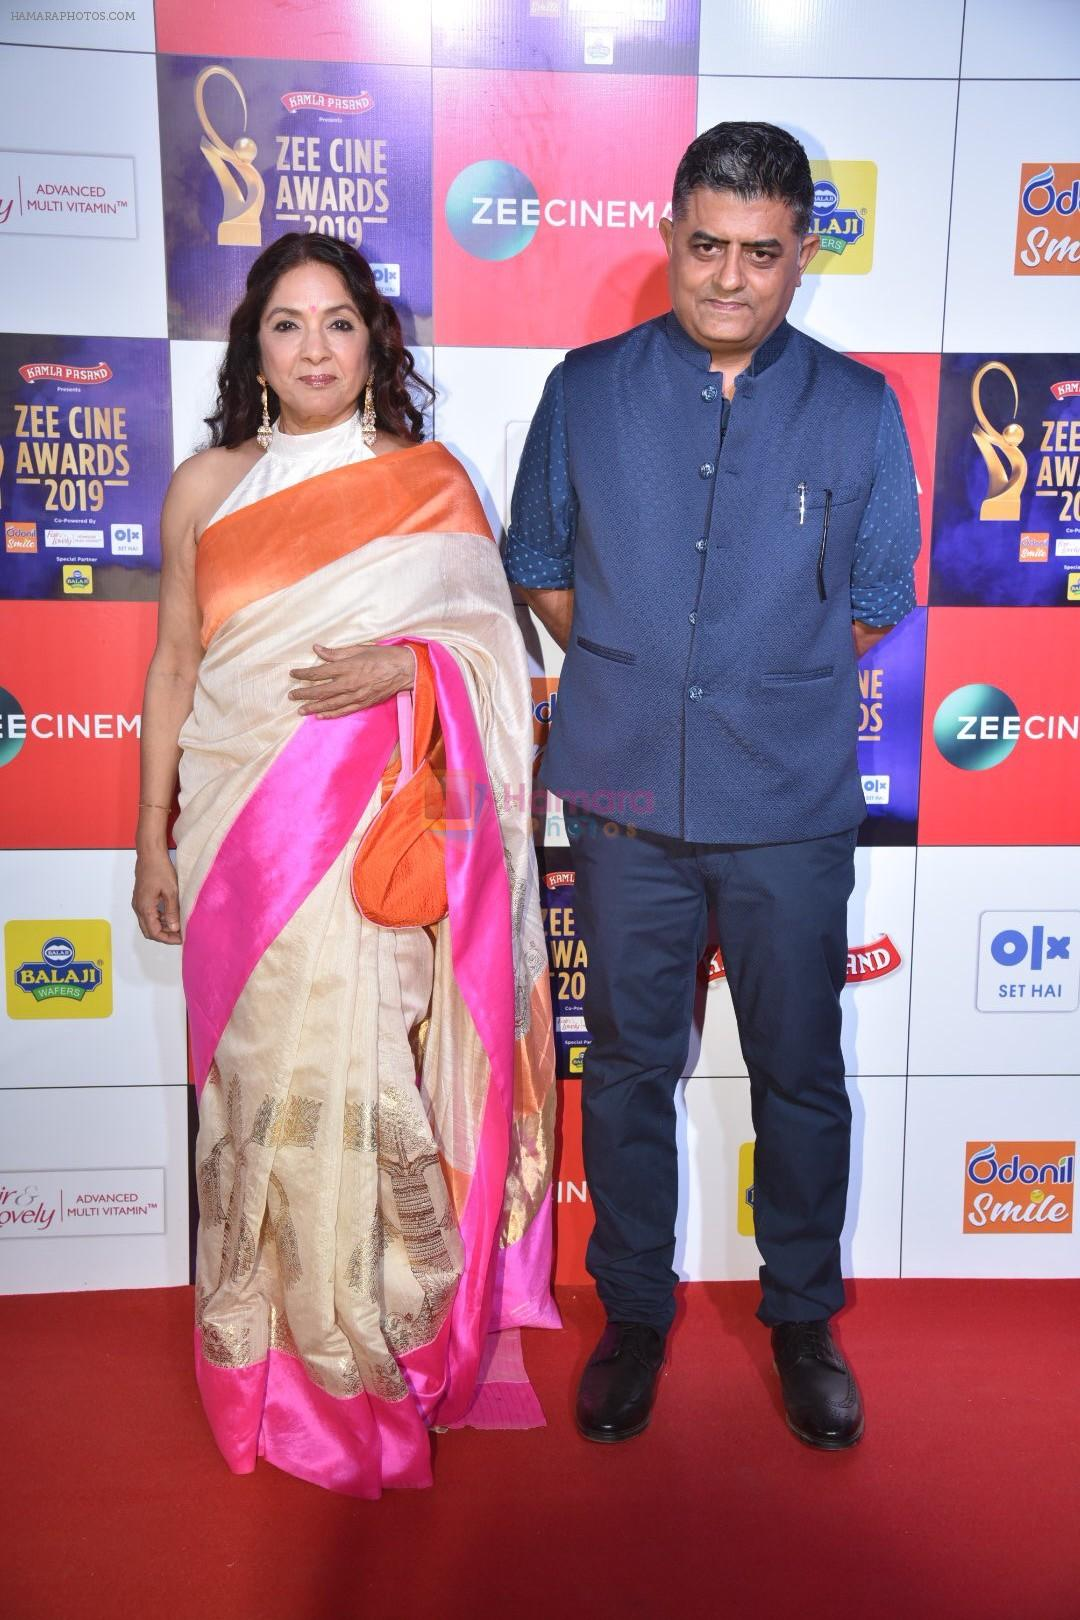 Neena Gupta, Gajraj Rao at Zee cine awards red carpet on 19th March 2019